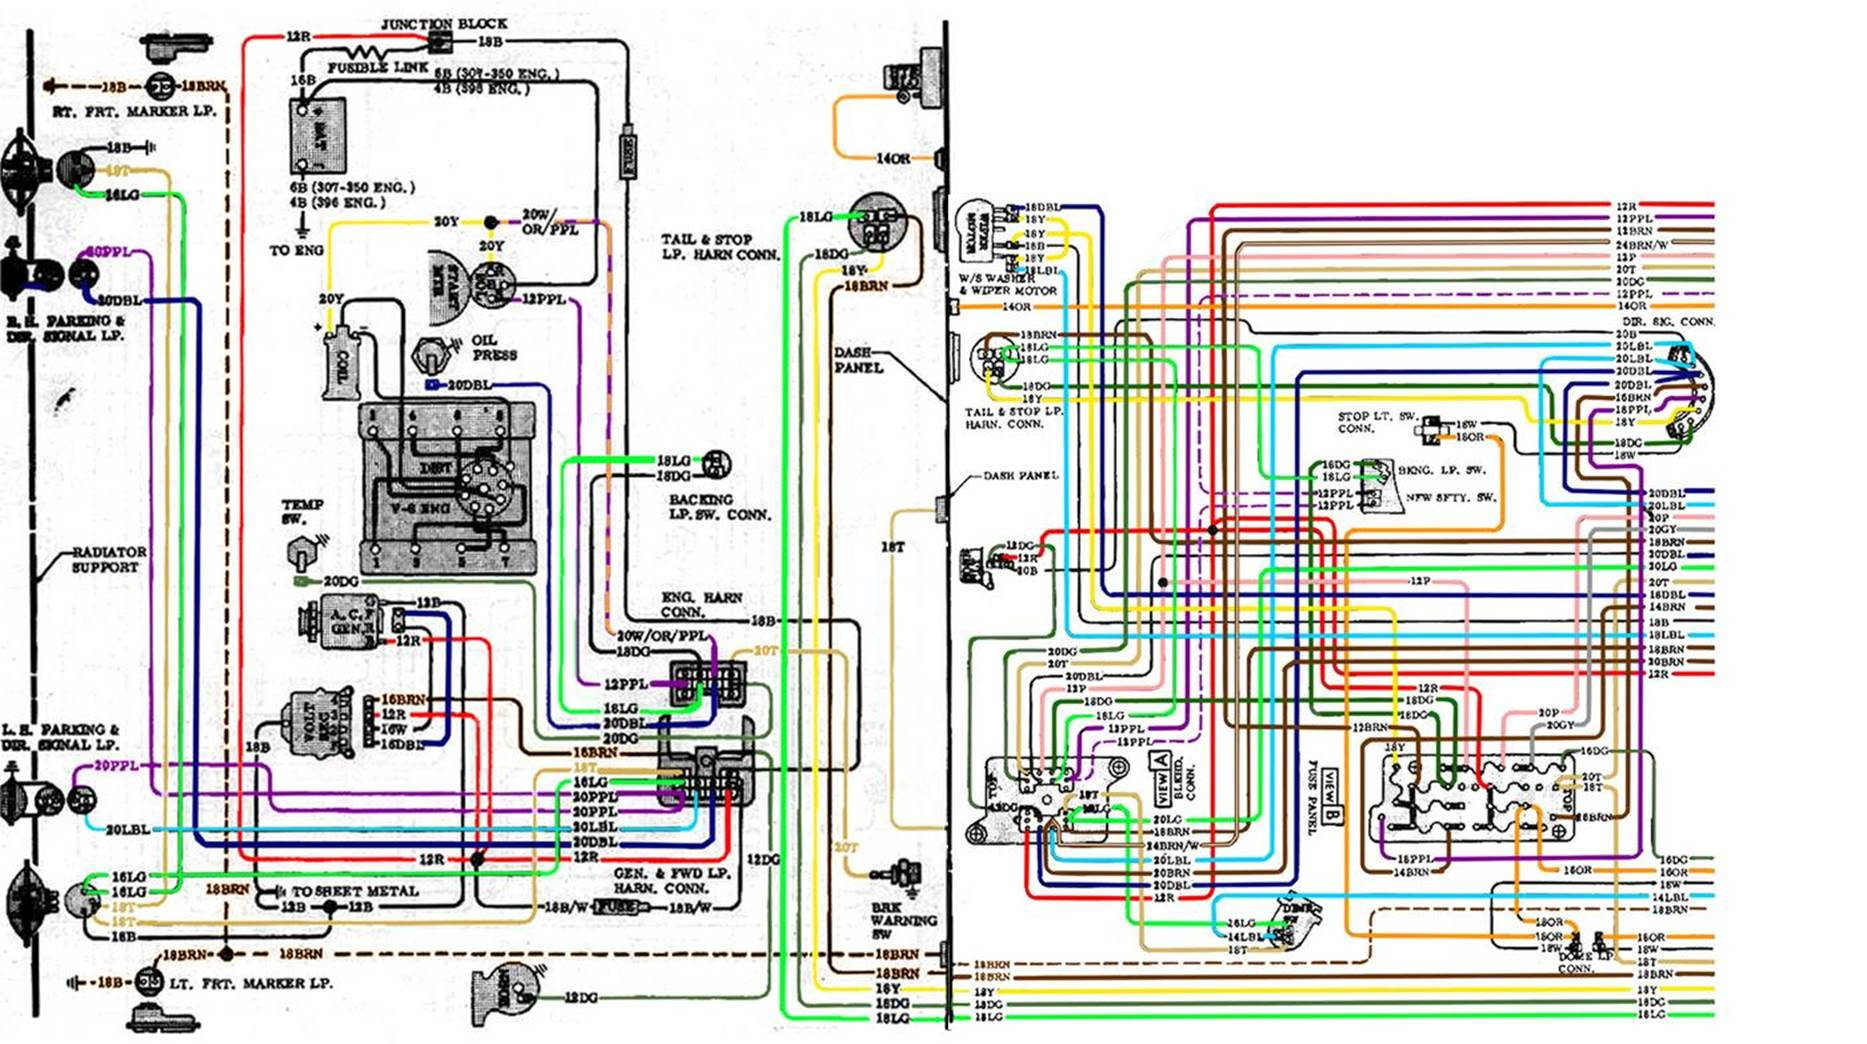 67 72 chevy wiring diagram rh outintheshop com 1972 chevy c10 wiring diagram 1964 chevy c10 wiring diagram